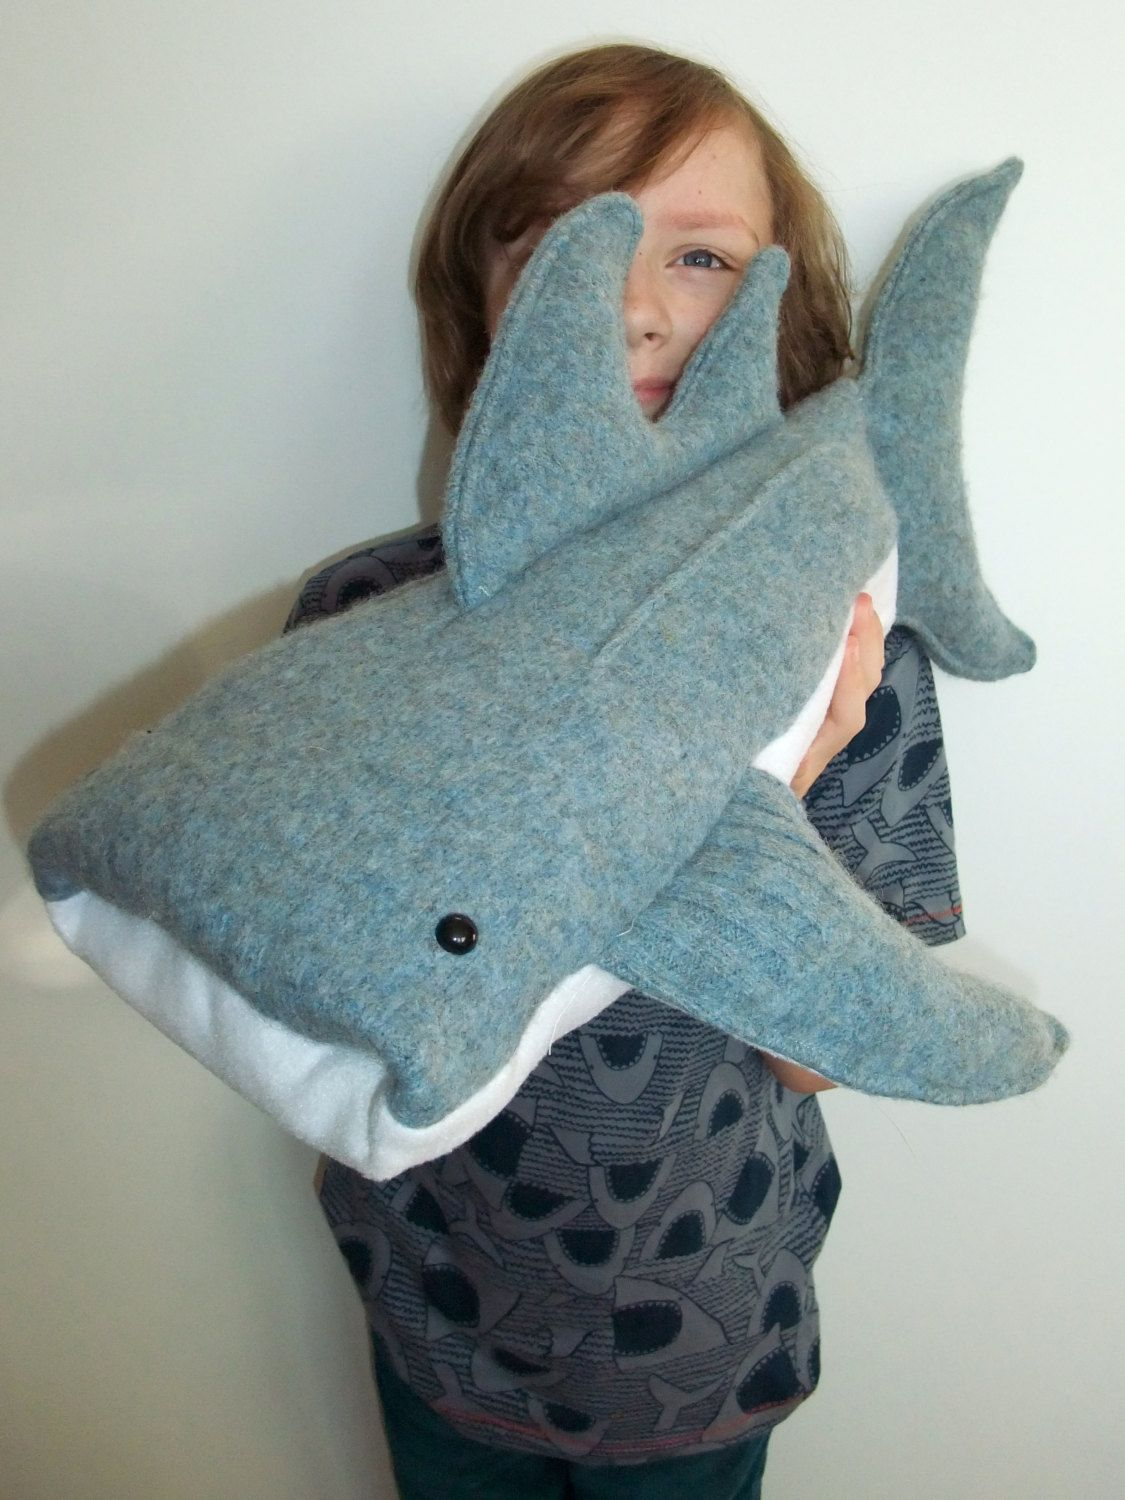 Wilbur whale shark sewing pattern large soft toy by wilbur whale shark sewing pattern large soft toy by threesilvertrees on etsy jeuxipadfo Choice Image